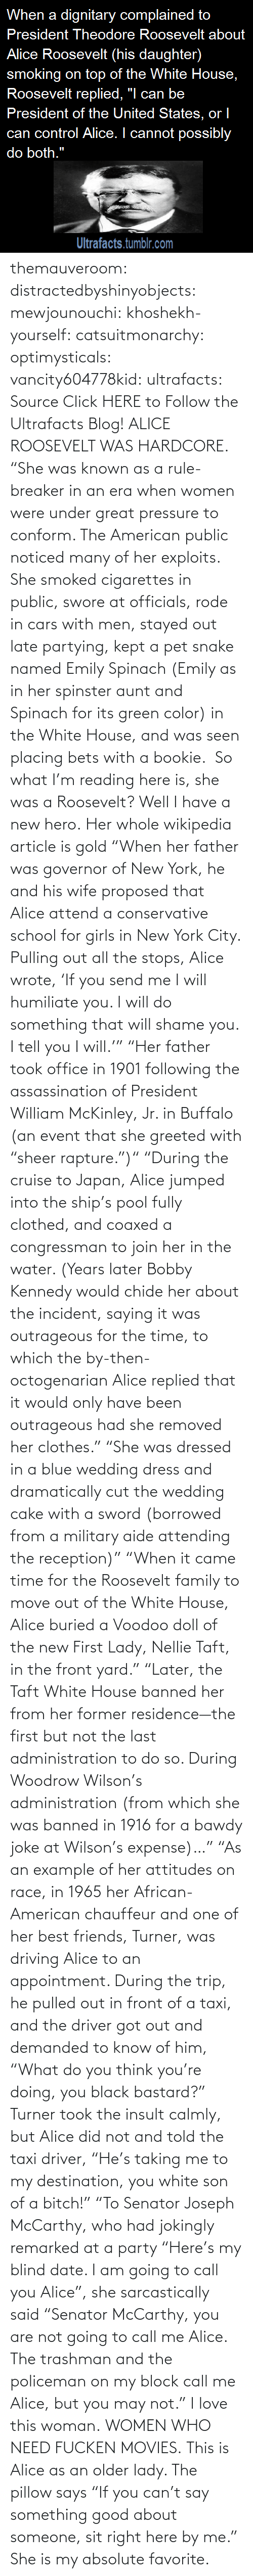 "Conservative: themauveroom: distractedbyshinyobjects:  mewjounouchi:  khoshekh-yourself:  catsuitmonarchy:  optimysticals:  vancity604778kid:  ultrafacts:     Source Click HERE to Follow the Ultrafacts Blog!     ALICE ROOSEVELT WAS HARDCORE. ""She was known as a rule-breaker in an era when women were under great pressure to conform. The American public noticed many of her exploits. She smoked cigarettes in public, swore at officials, rode in cars with men, stayed out late partying, kept a pet snake named Emily Spinach (Emily as in her spinster aunt and Spinach for its green color) in the White House, and was seen placing bets with a bookie.    So what I'm reading here is, she was a Roosevelt?  Well I have a new hero.  Her whole wikipedia article is gold ""When her father was governor of New York, he and his wife proposed that Alice attend a conservative school for girls in New York City. Pulling out all the stops, Alice wrote, 'If you send me I will humiliate you. I will do something that will shame you. I tell you I will.'"" ""Her father took office in 1901 following the assassination of President William McKinley, Jr. in Buffalo (an event that she greeted with ""sheer rapture."")"" ""During the cruise to Japan, Alice jumped into the ship's pool fully clothed, and coaxed a congressman to join her in the water. (Years later Bobby Kennedy would chide her about the incident, saying it was outrageous for the time, to which the by-then-octogenarian Alice replied that it would only have been outrageous had she removed her clothes."" ""She was dressed in a blue wedding dress and dramatically cut the wedding cake with a sword (borrowed from a military aide attending the reception)"" ""When it came time for the Roosevelt family to move out of the White House, Alice buried a Voodoo doll of the new First Lady, Nellie Taft, in the front yard."" ""Later, the Taft White House banned her from her former residence—the first but not the last administration to do so. During Woodrow Wilson's administration (from which she was banned in 1916 for a bawdy joke at Wilson's expense)…"" ""As an example of her attitudes on race, in 1965 her African-American chauffeur and one of her best friends, Turner, was driving Alice to an appointment. During the trip, he pulled out in front of a taxi, and the driver got out and demanded to know of him, ""What do you think you're doing, you black bastard?"" Turner took the insult calmly, but Alice did not and told the taxi driver, ""He's taking me to my destination, you white son of a bitch!"" ""To Senator Joseph McCarthy, who had jokingly remarked at a party ""Here's my blind date. I am going to call you Alice"", she sarcastically said ""Senator McCarthy, you are not going to call me Alice. The trashman and the policeman on my block call me Alice, but you may not.""  I love this woman.  WOMEN WHO NEED FUCKEN MOVIES.   This is Alice as an older lady. The pillow says ""If you can't say something good about someone, sit right here by me.""  She is my absolute favorite."